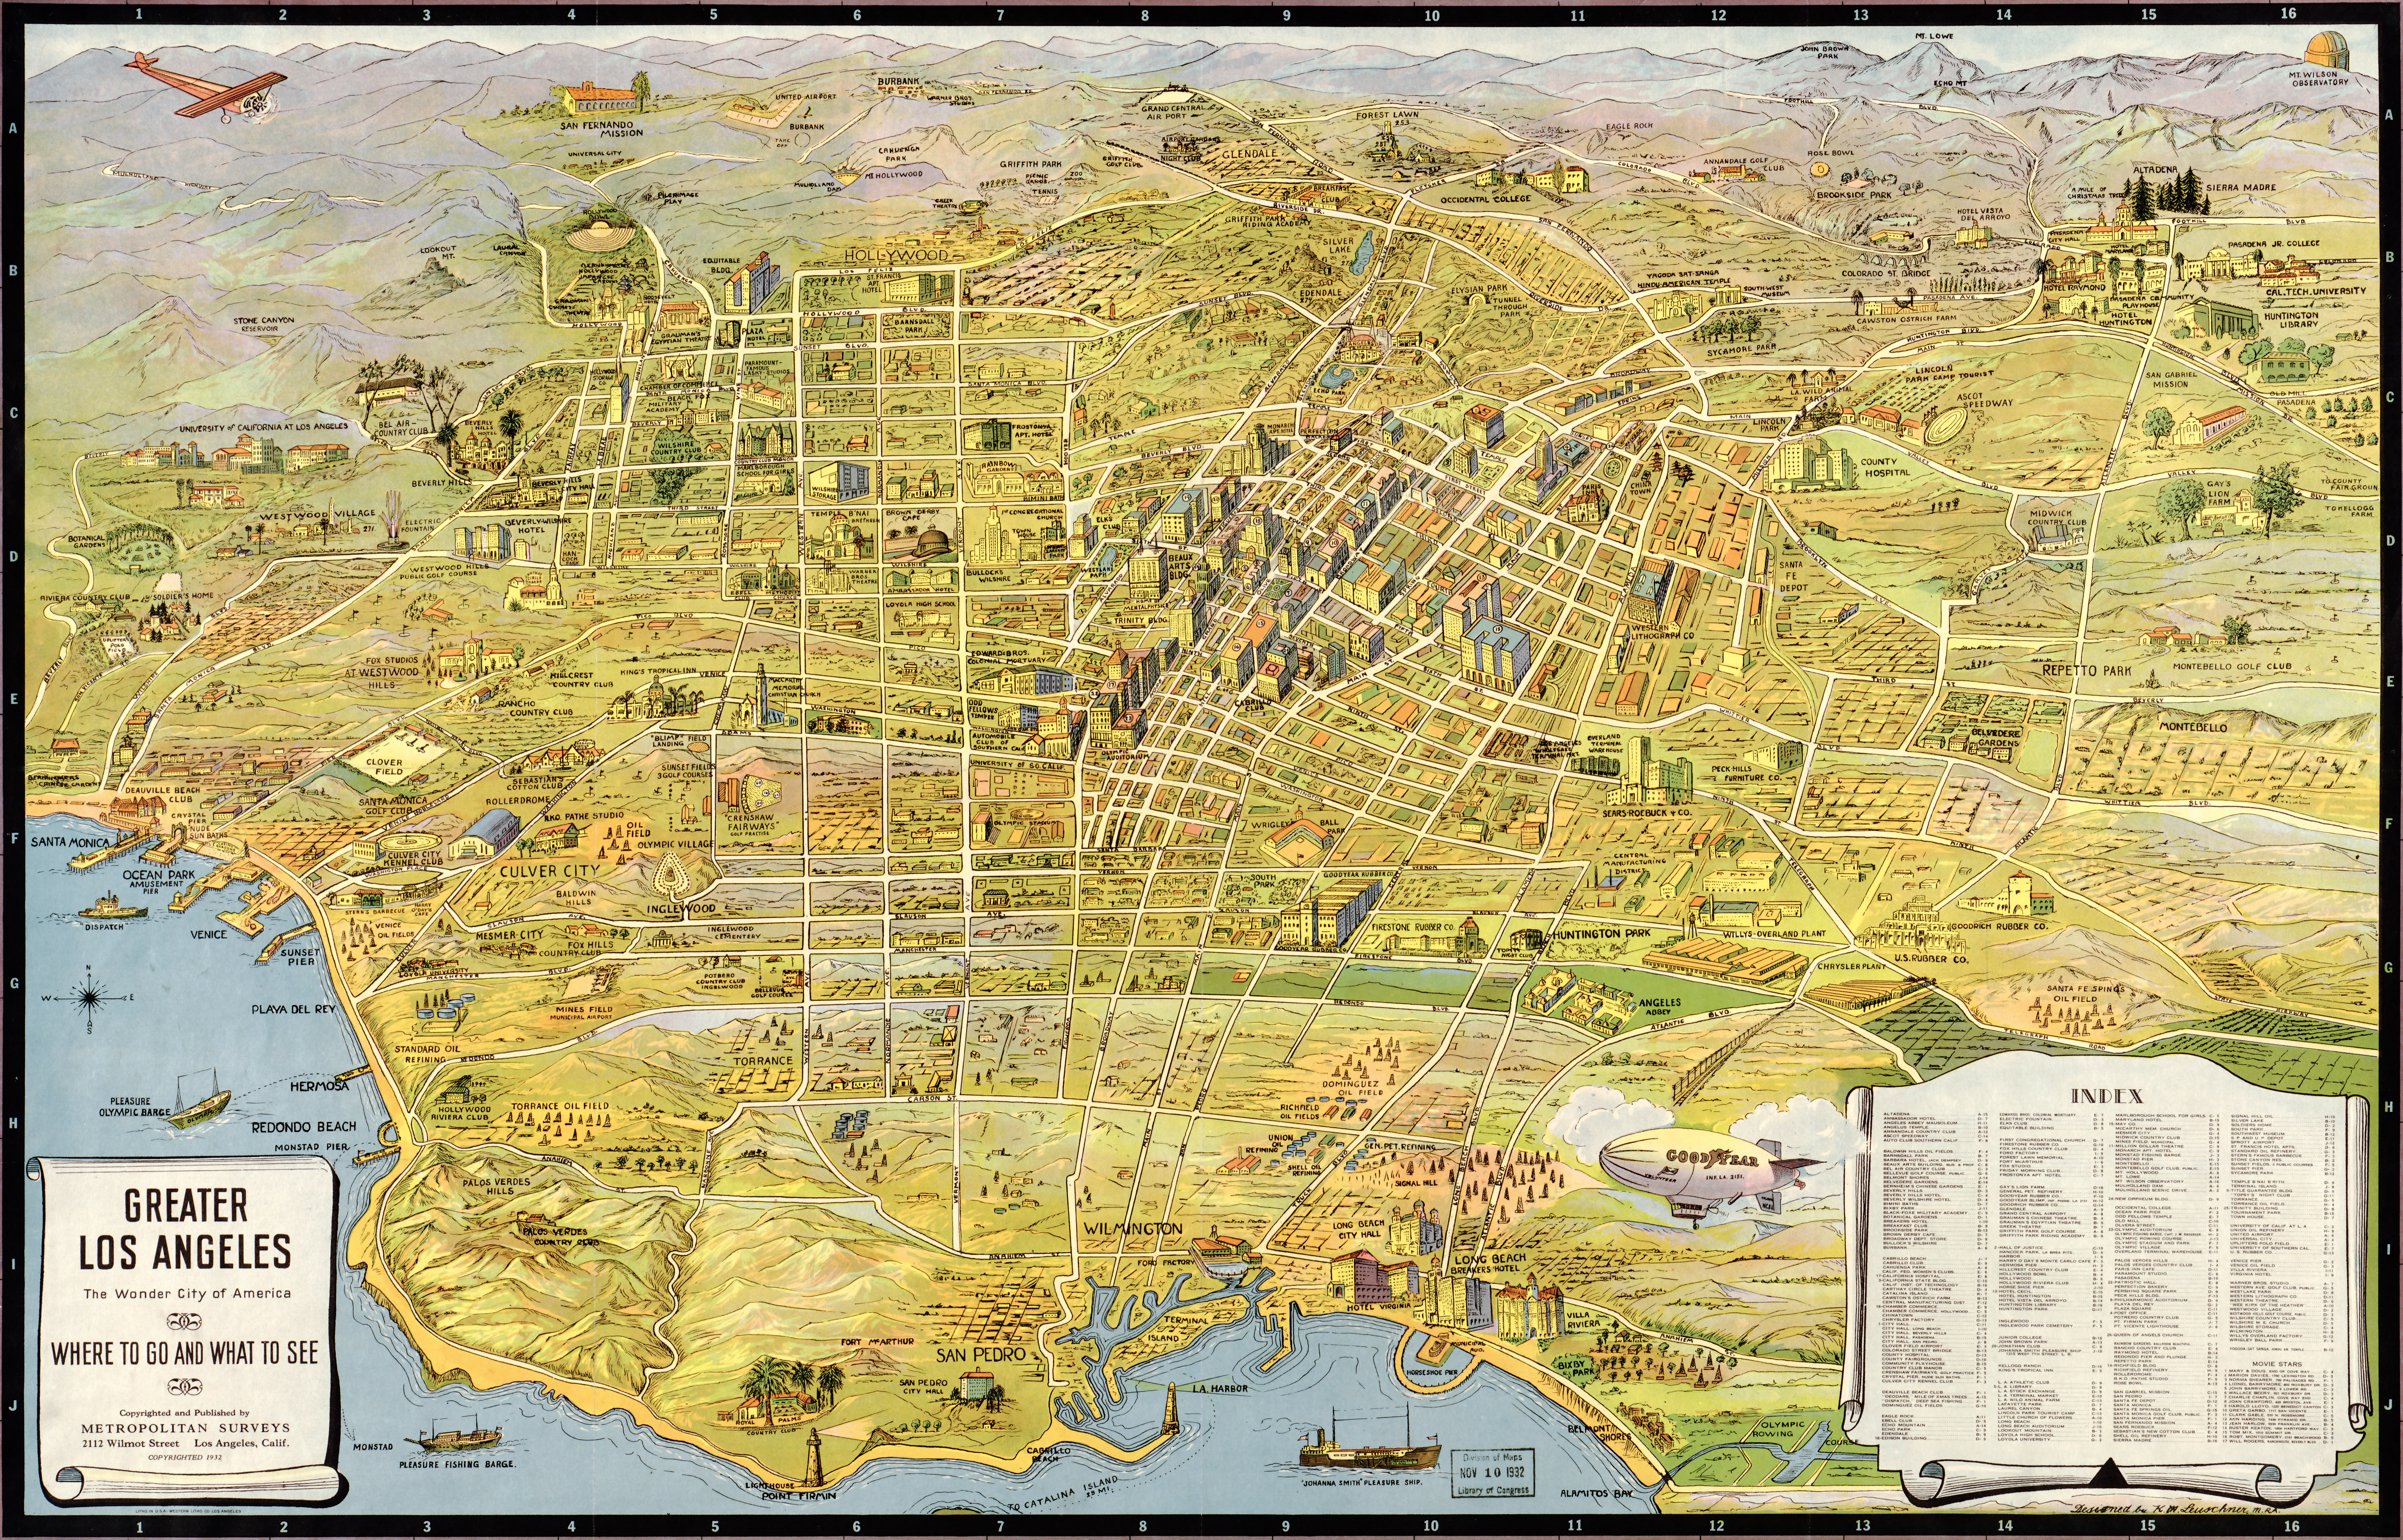 Los Angeles the wonder city of America 1932